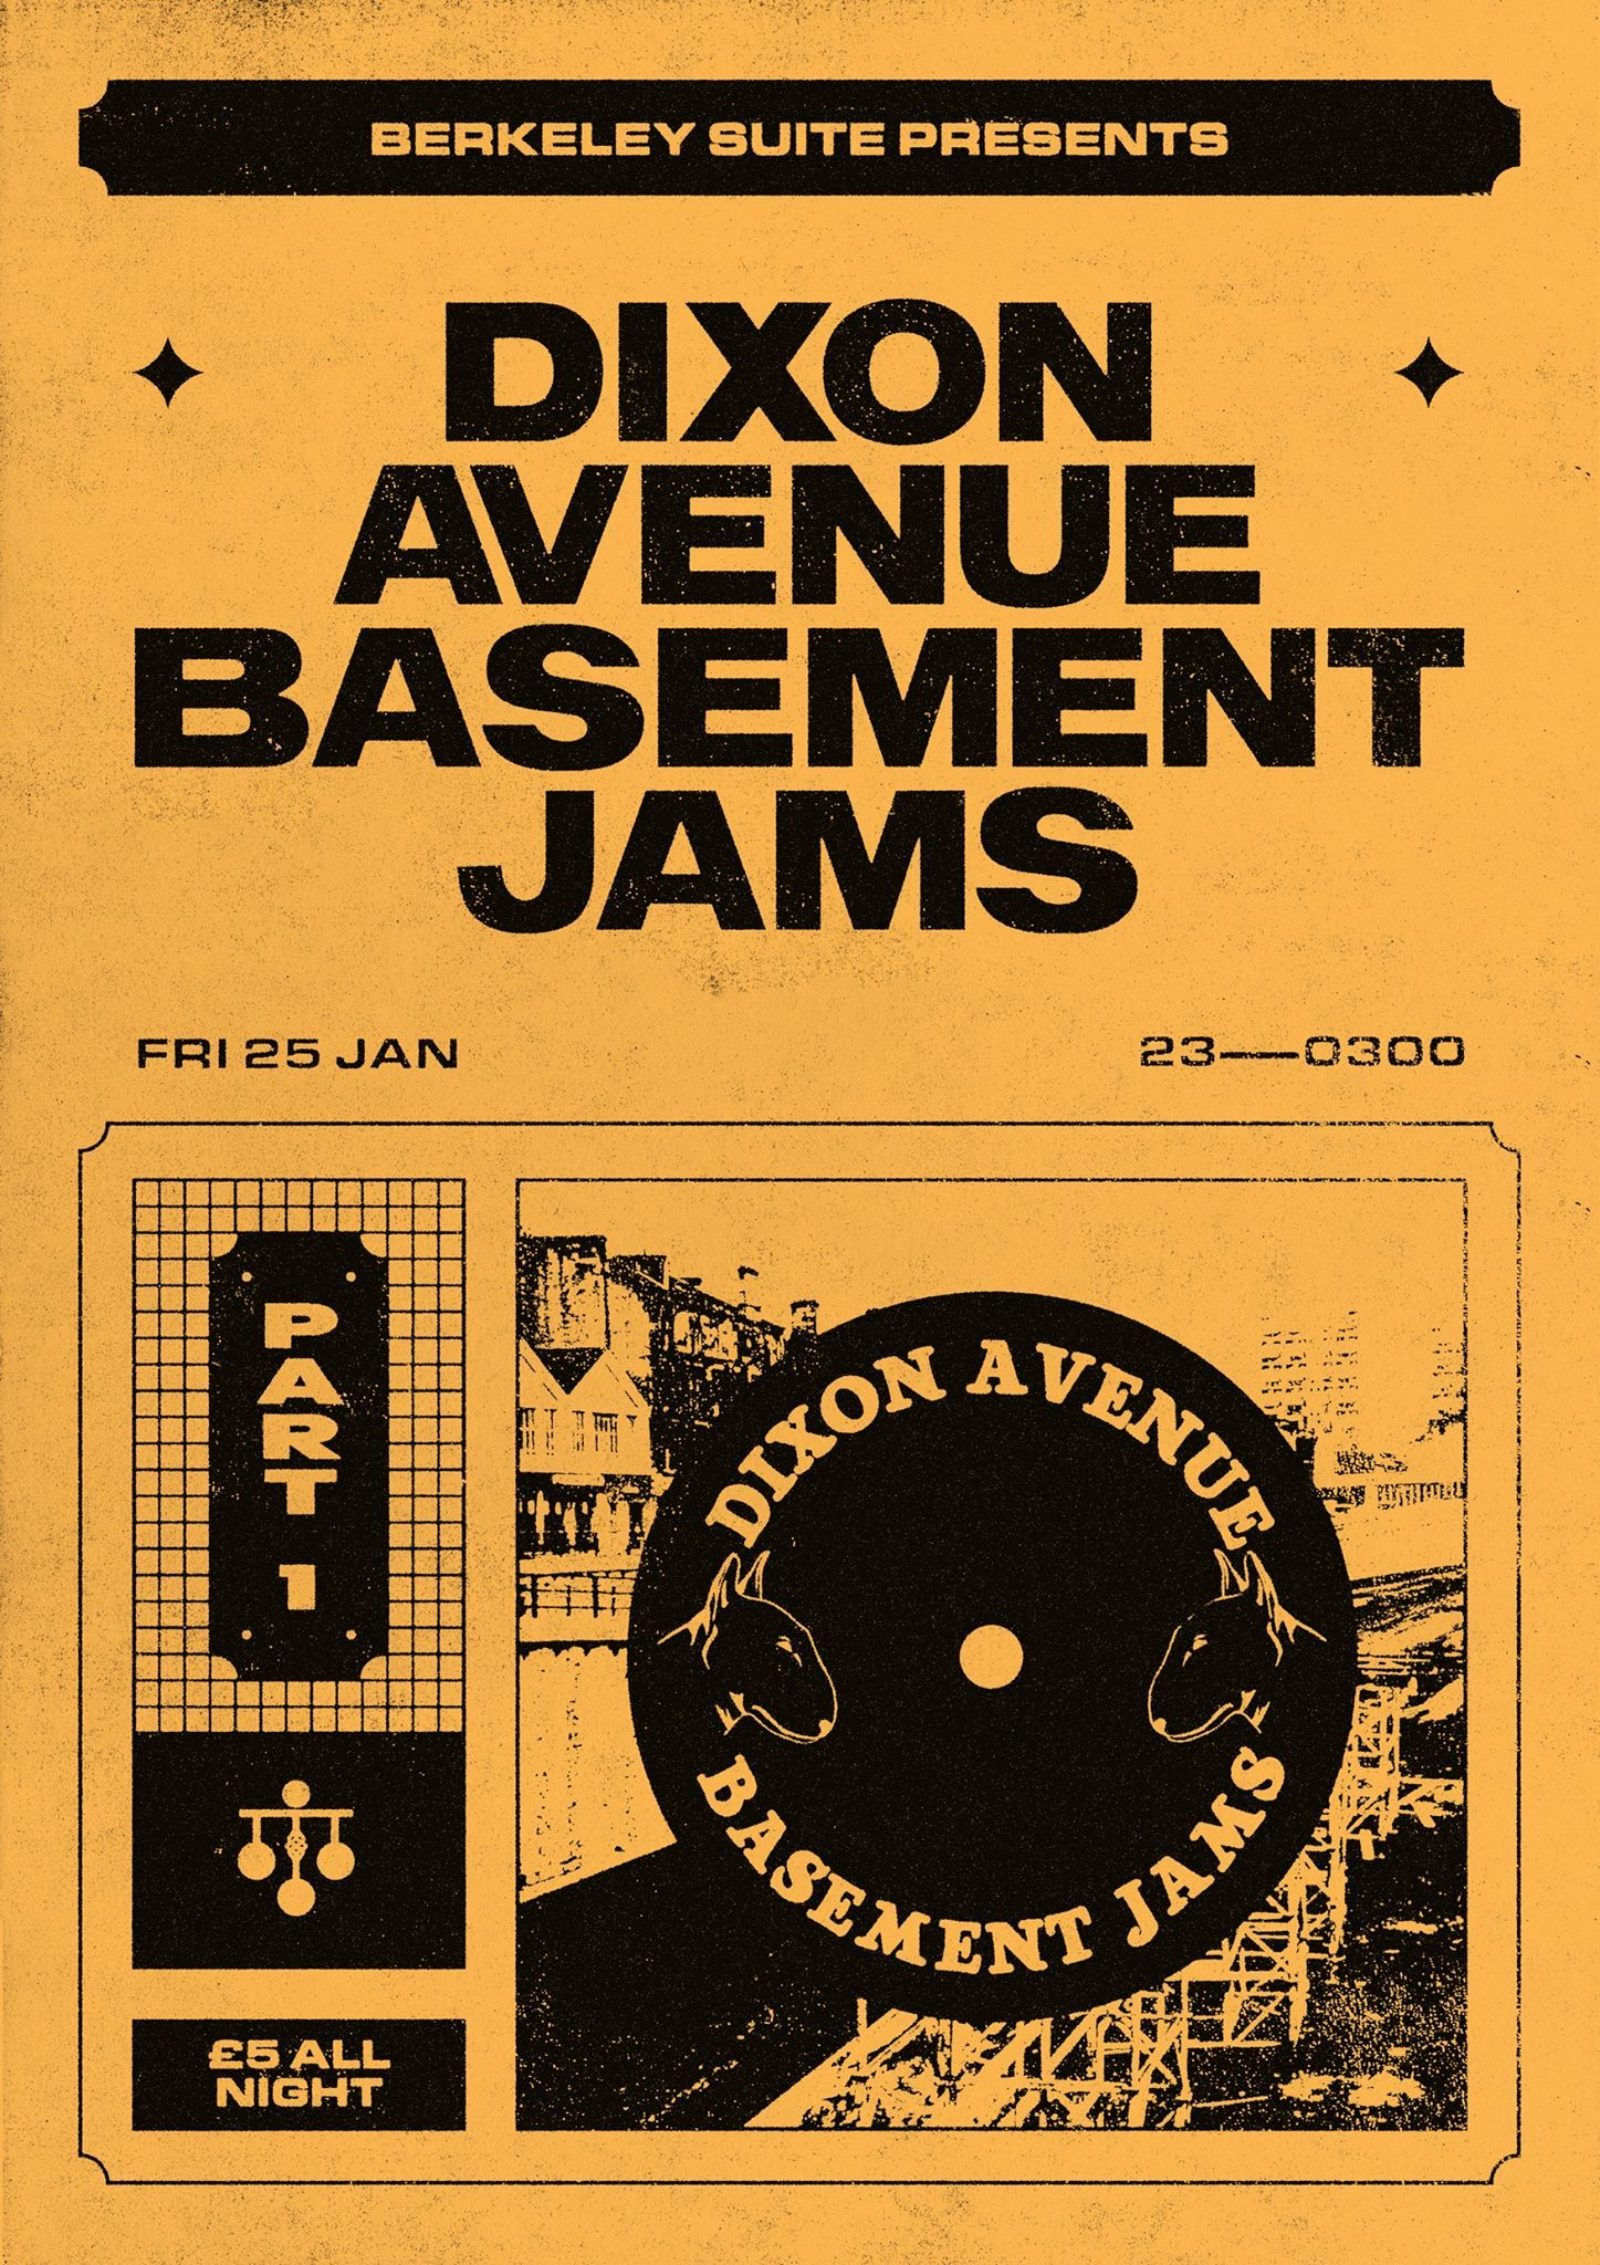 Dixon Avenue Basement Jams